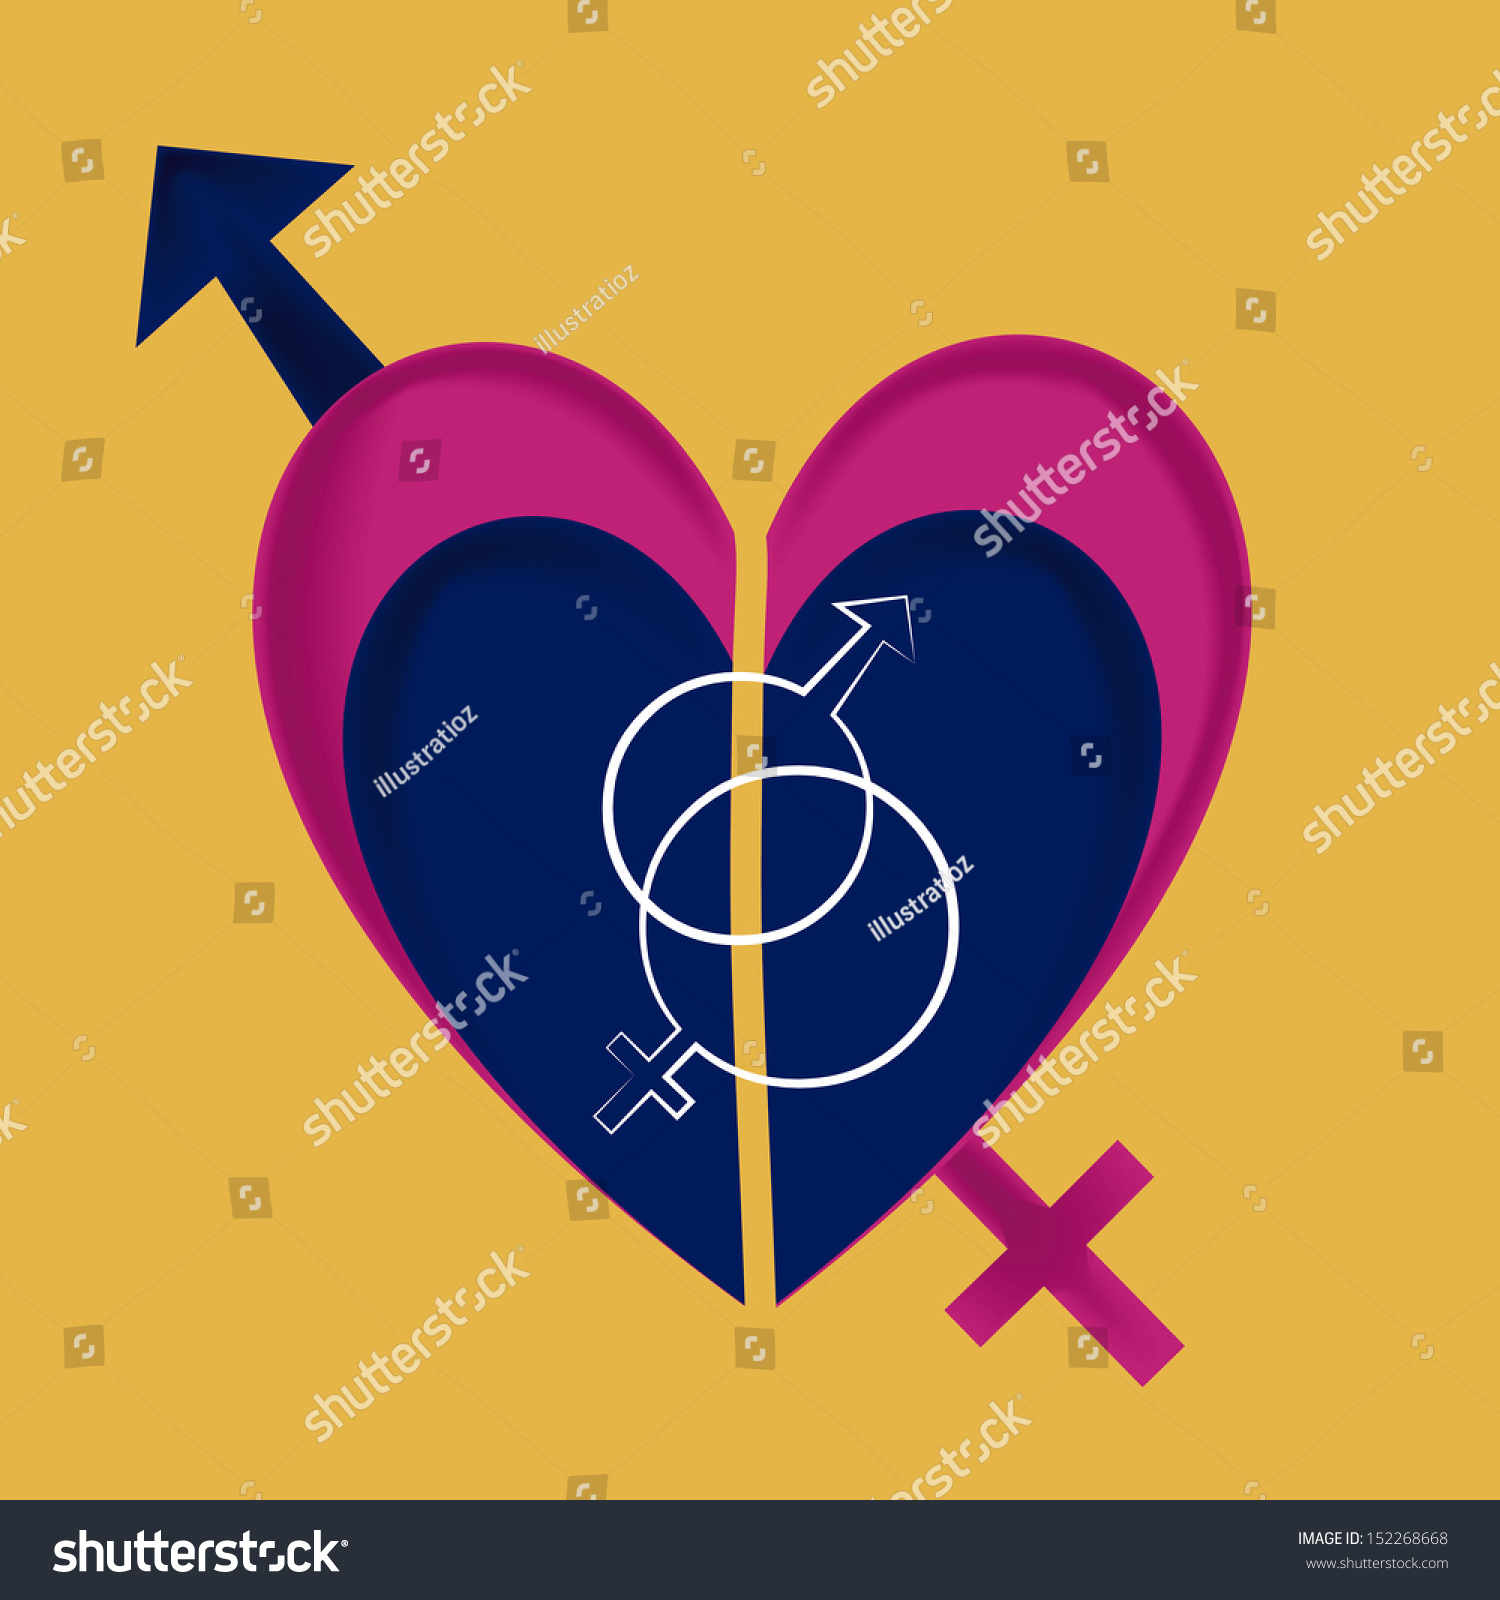 Two gender symbols together within heart stock vector 152268668 two gender symbols together within a heart in a yellow background biocorpaavc Images